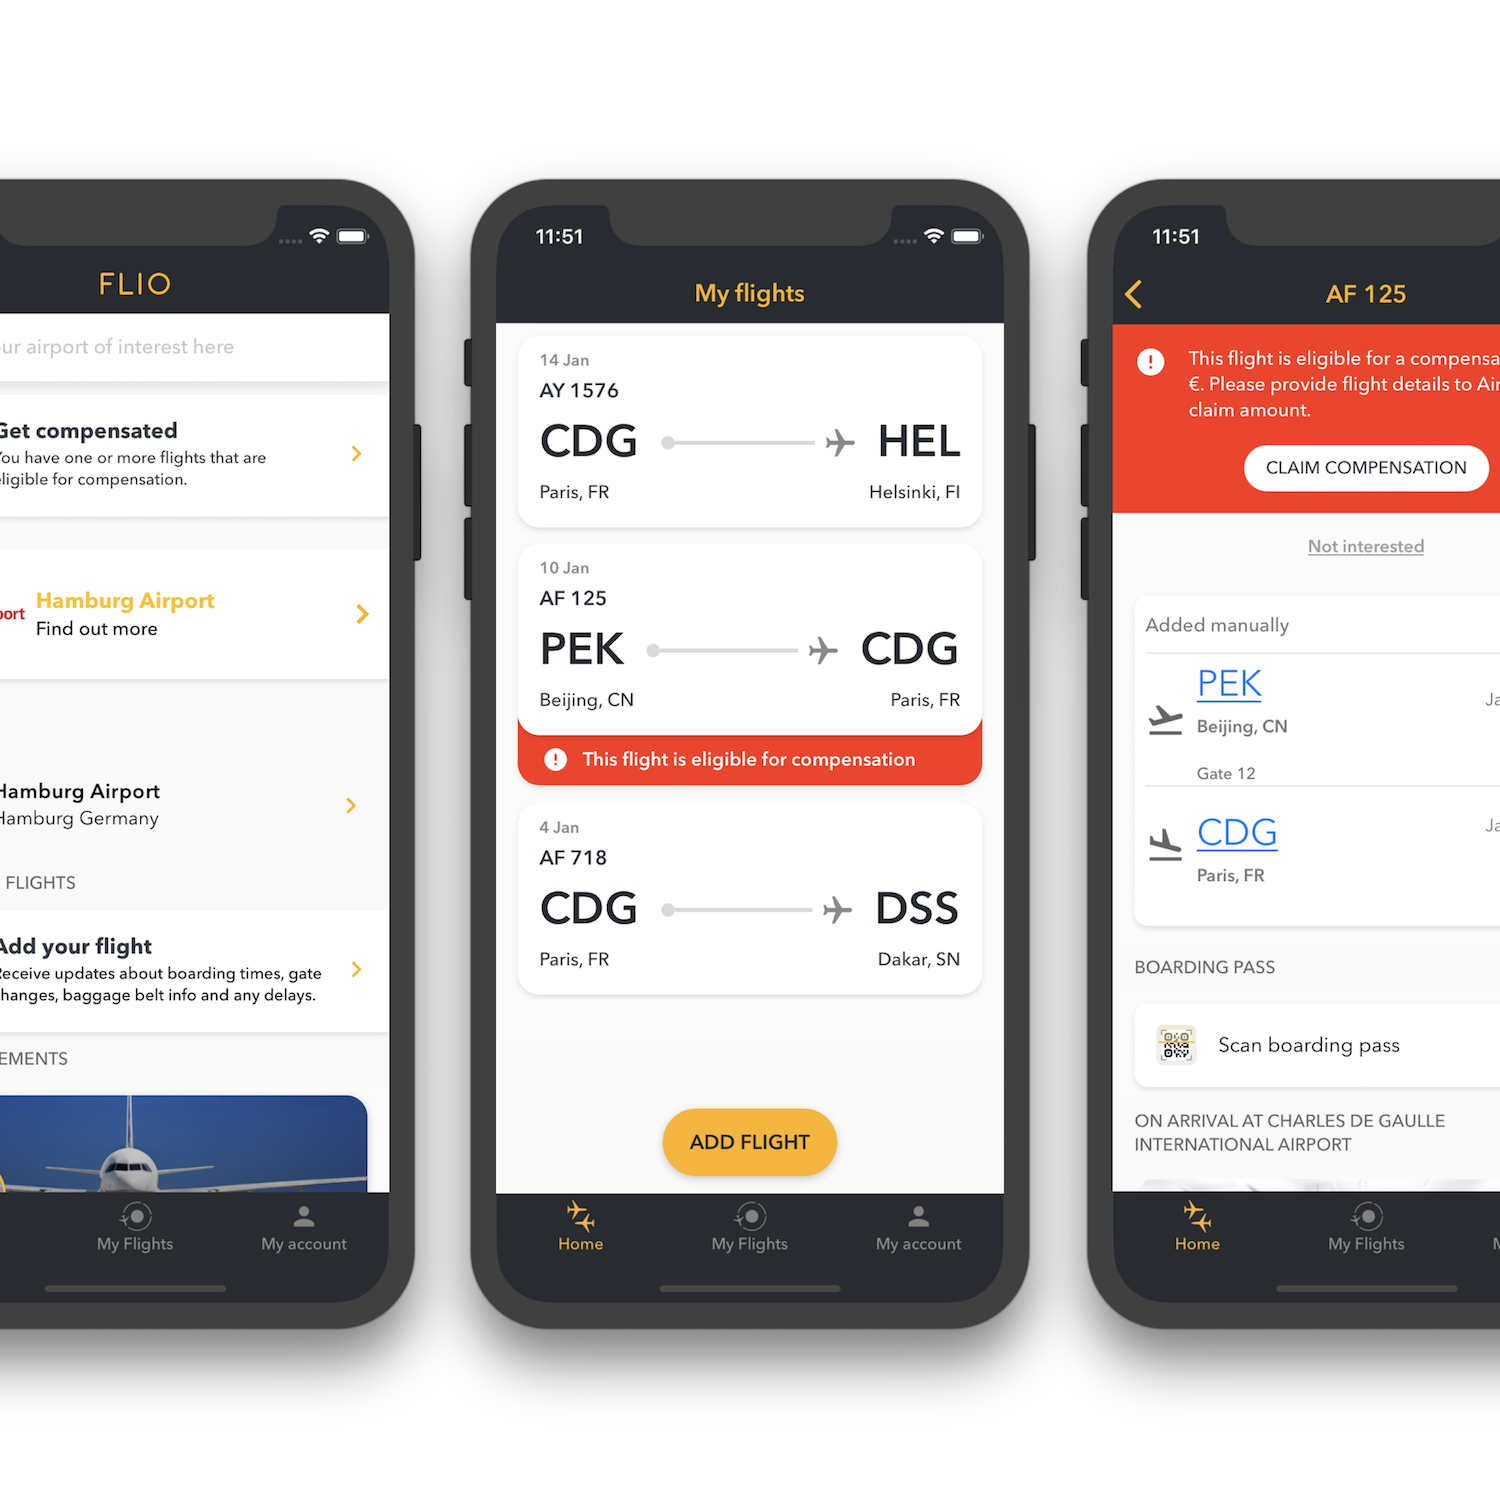 FLIO introduces flight compensation